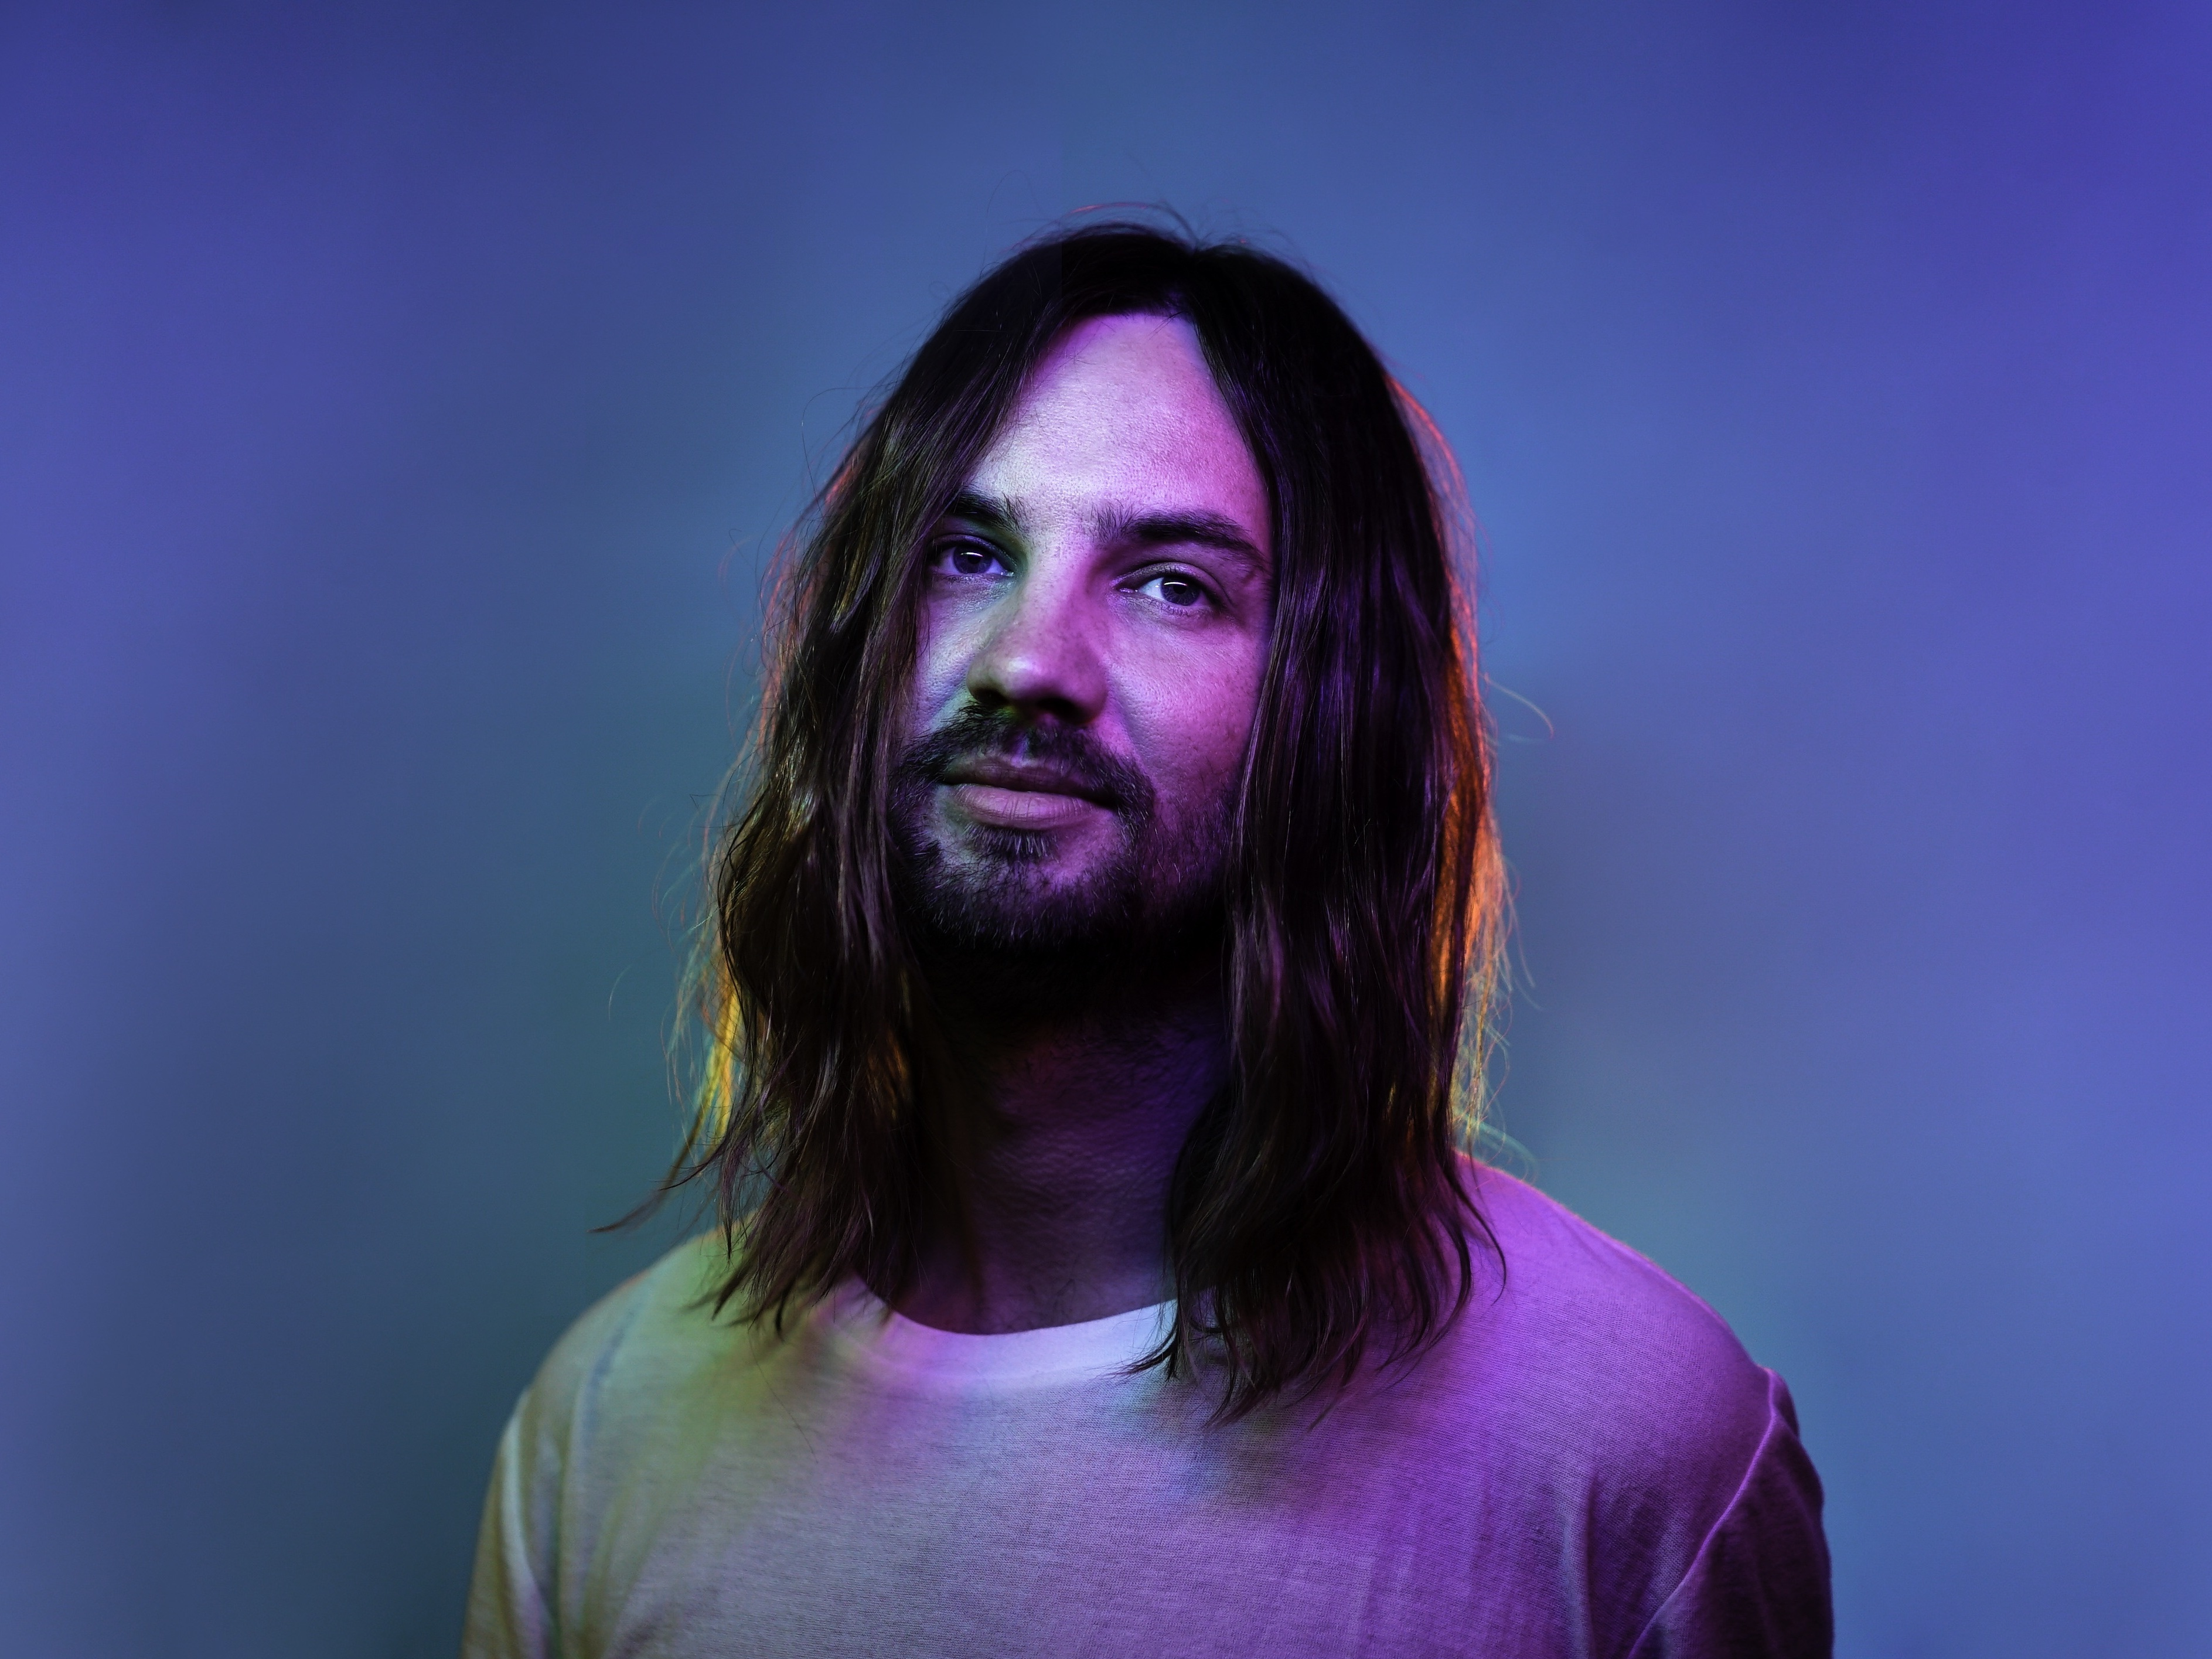 Review: On 'The Slow Rush,' Tame Impala Masks Inner Turmoil With Sonic Euphoria